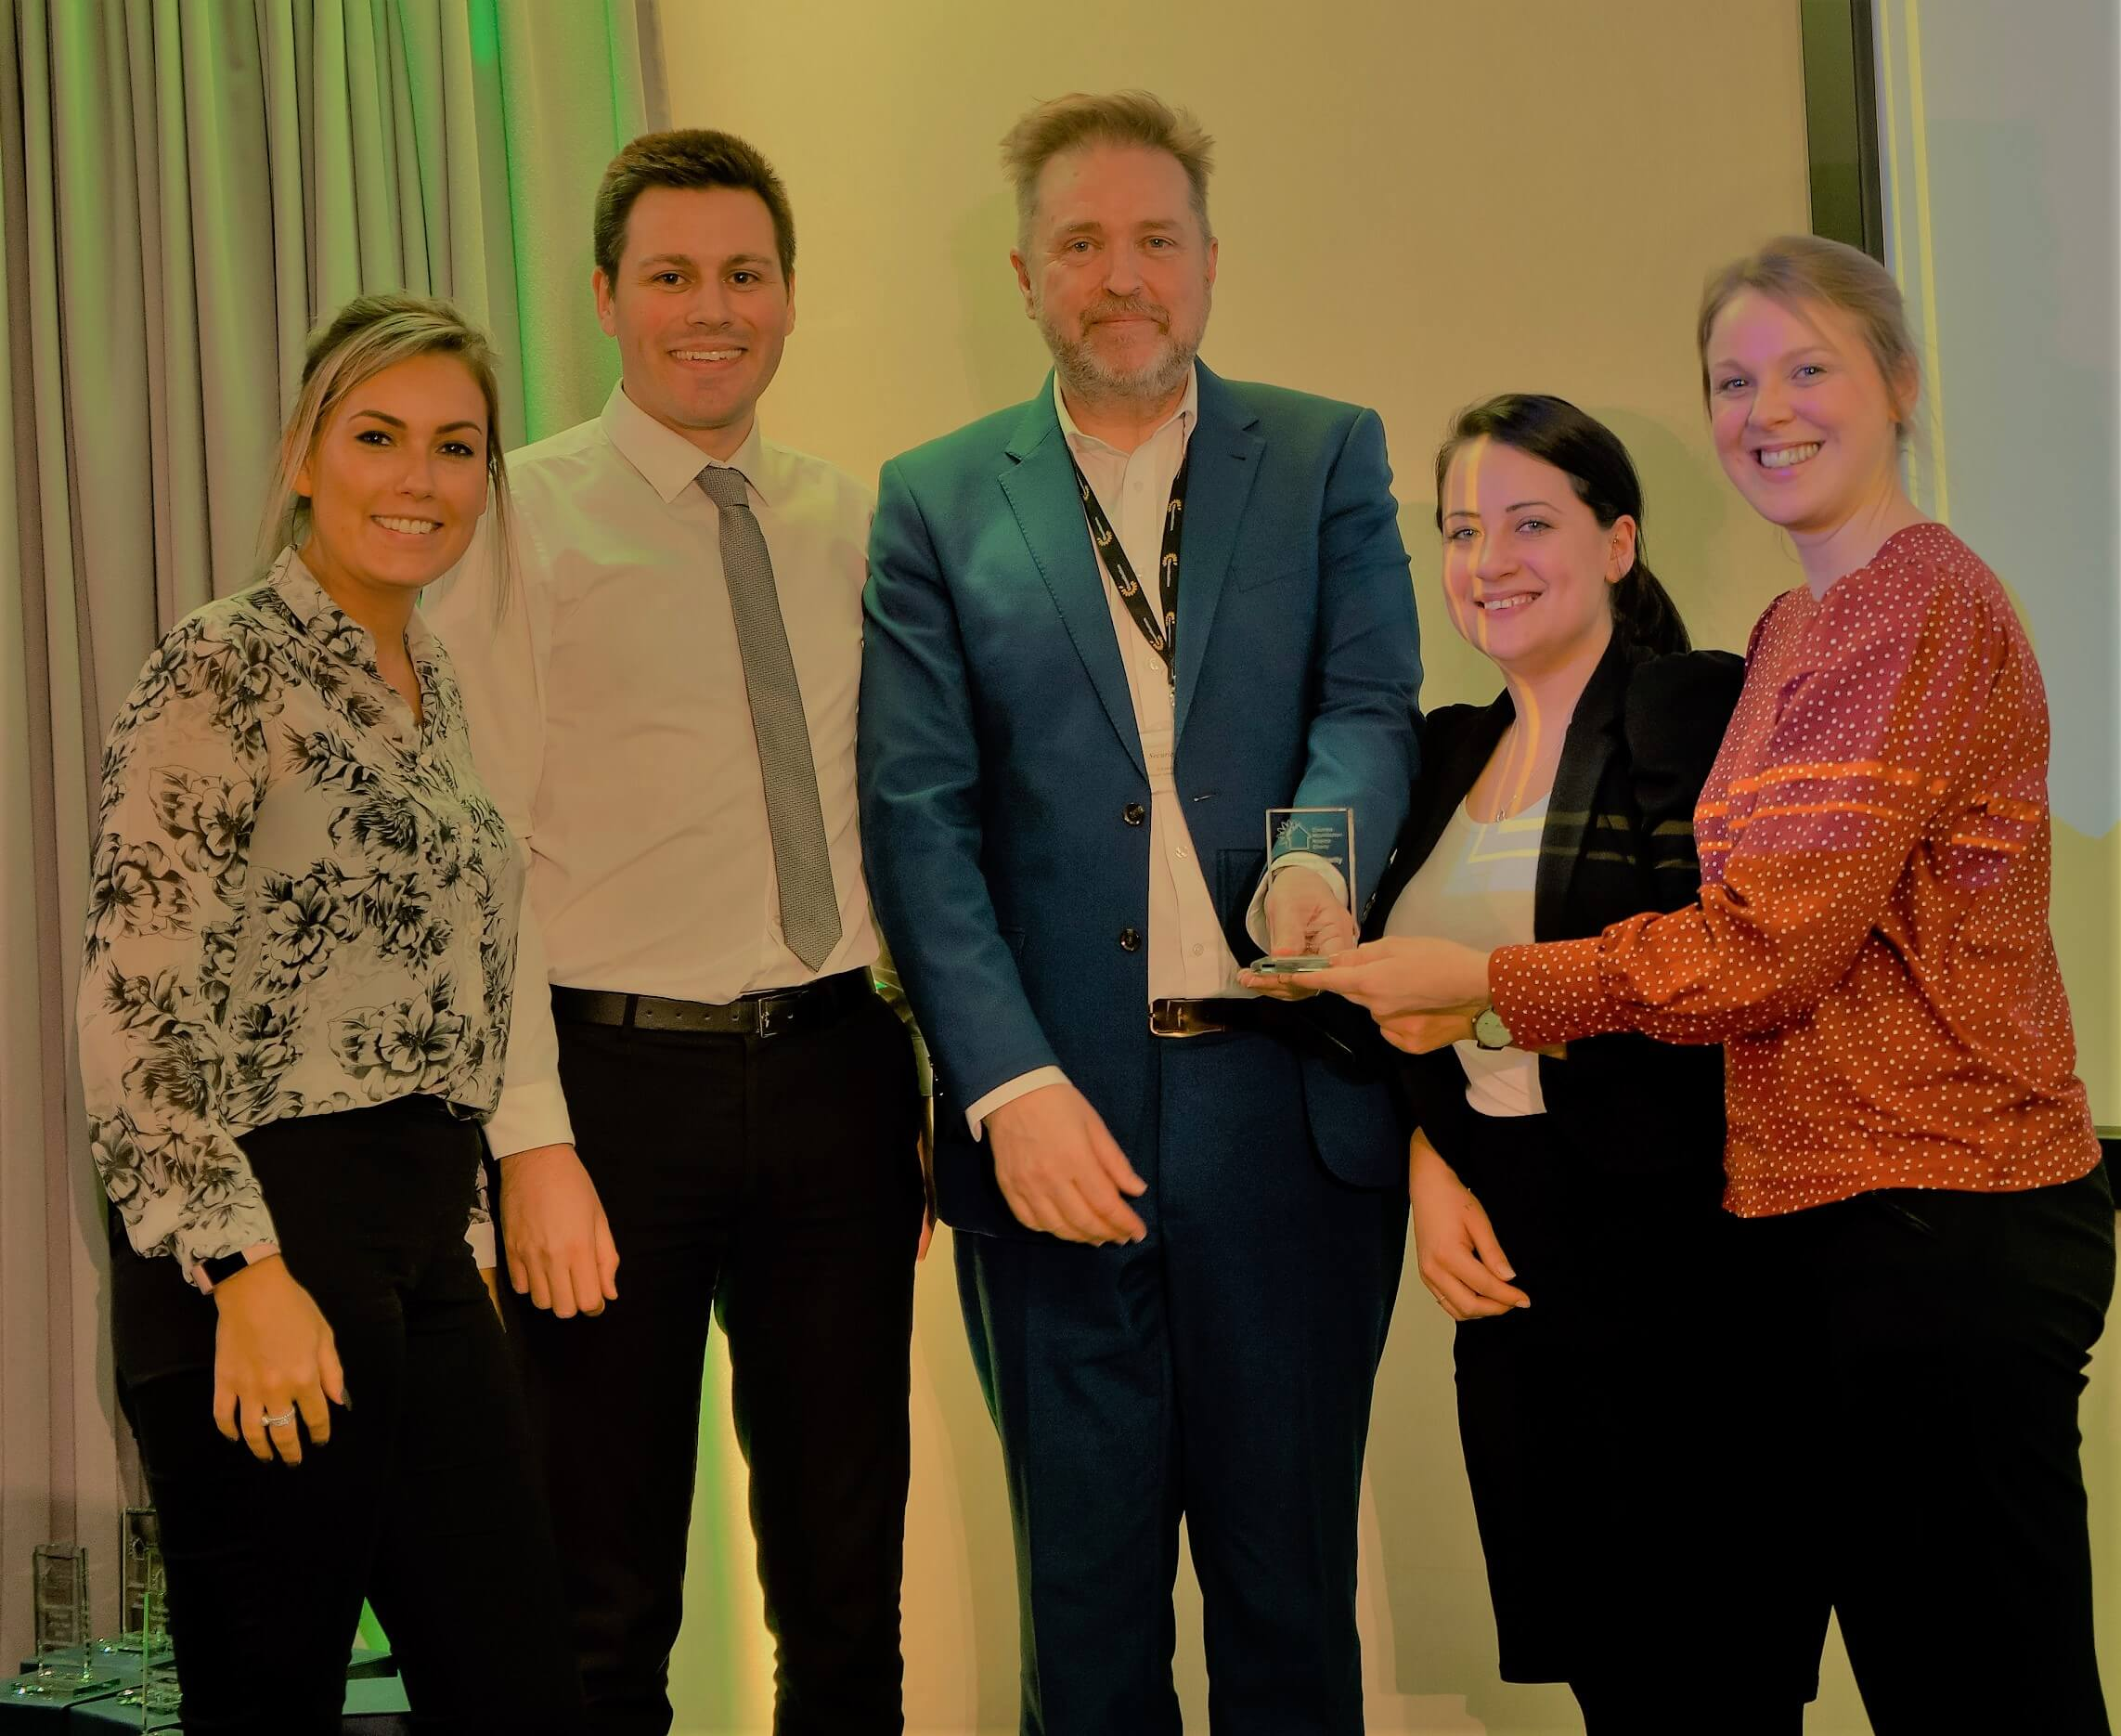 Onecom honoured for raising thousands of pounds for Charity